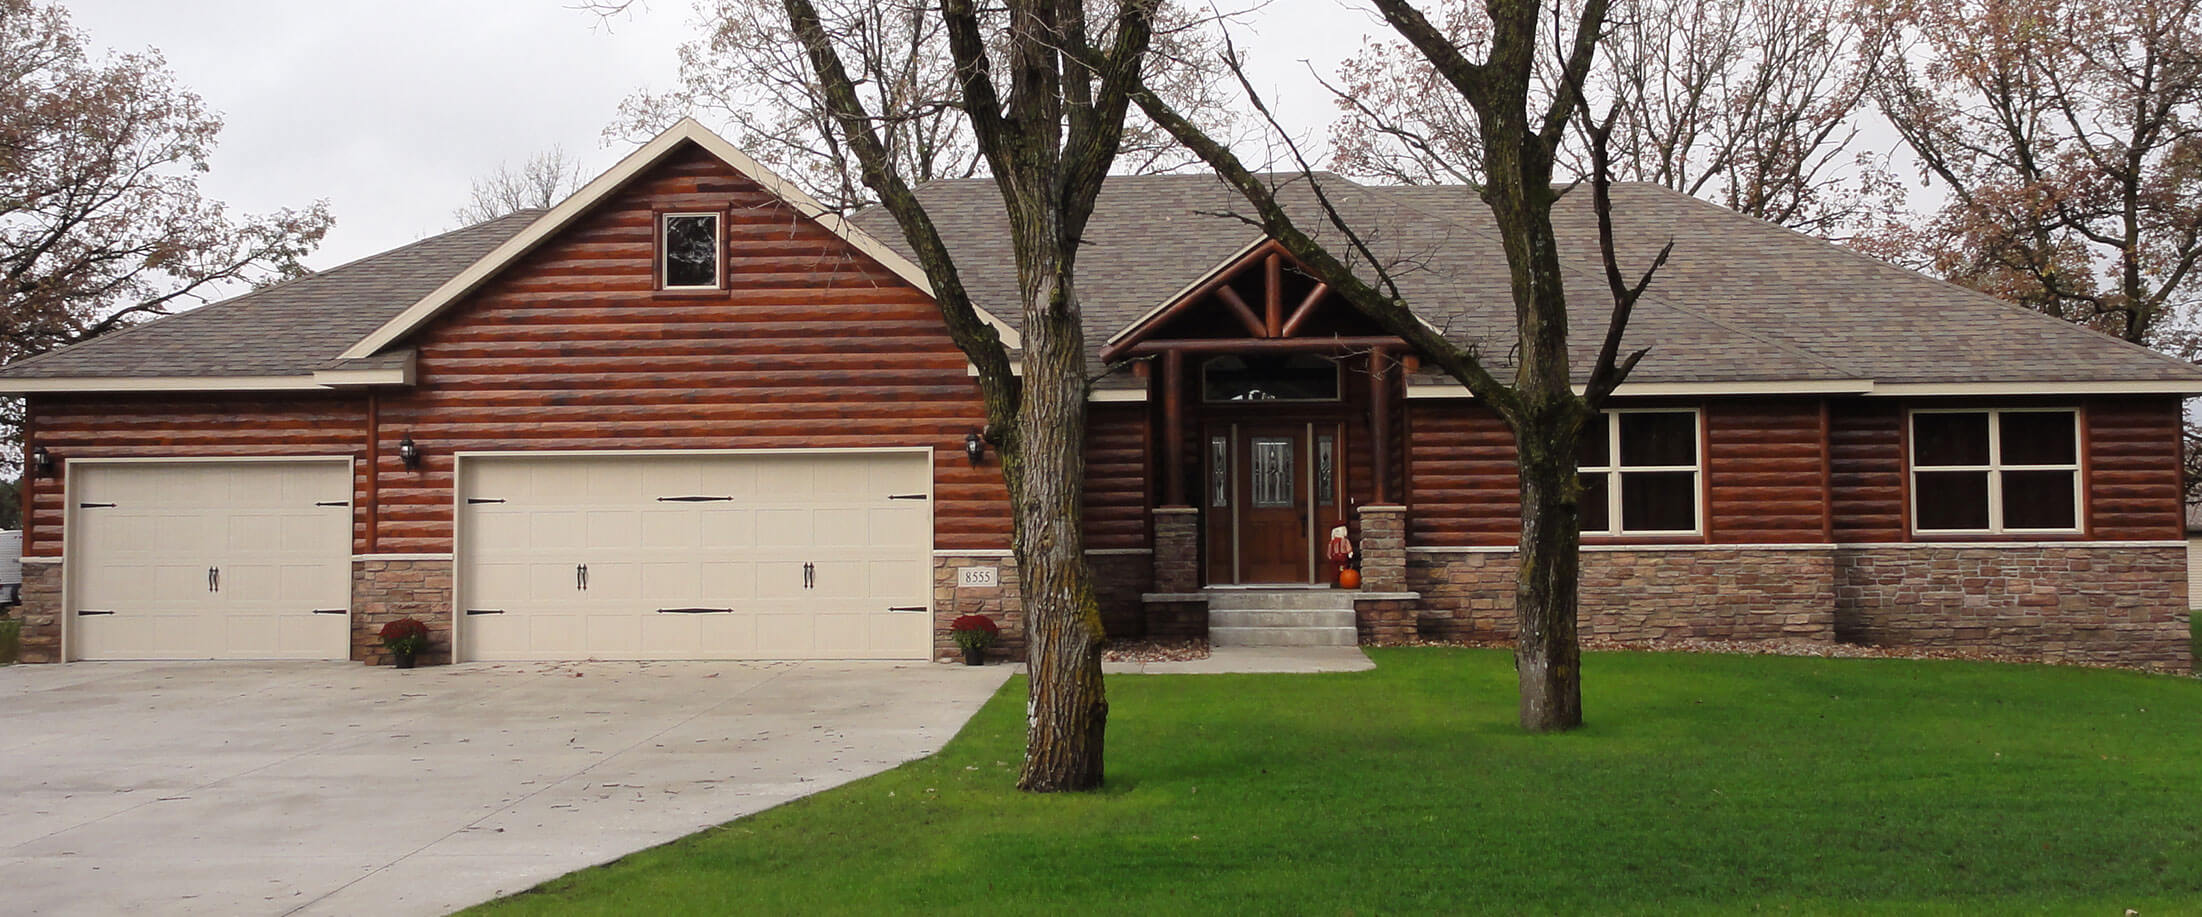 Exterior of a log style, single family home built by Lifestyle Lumber